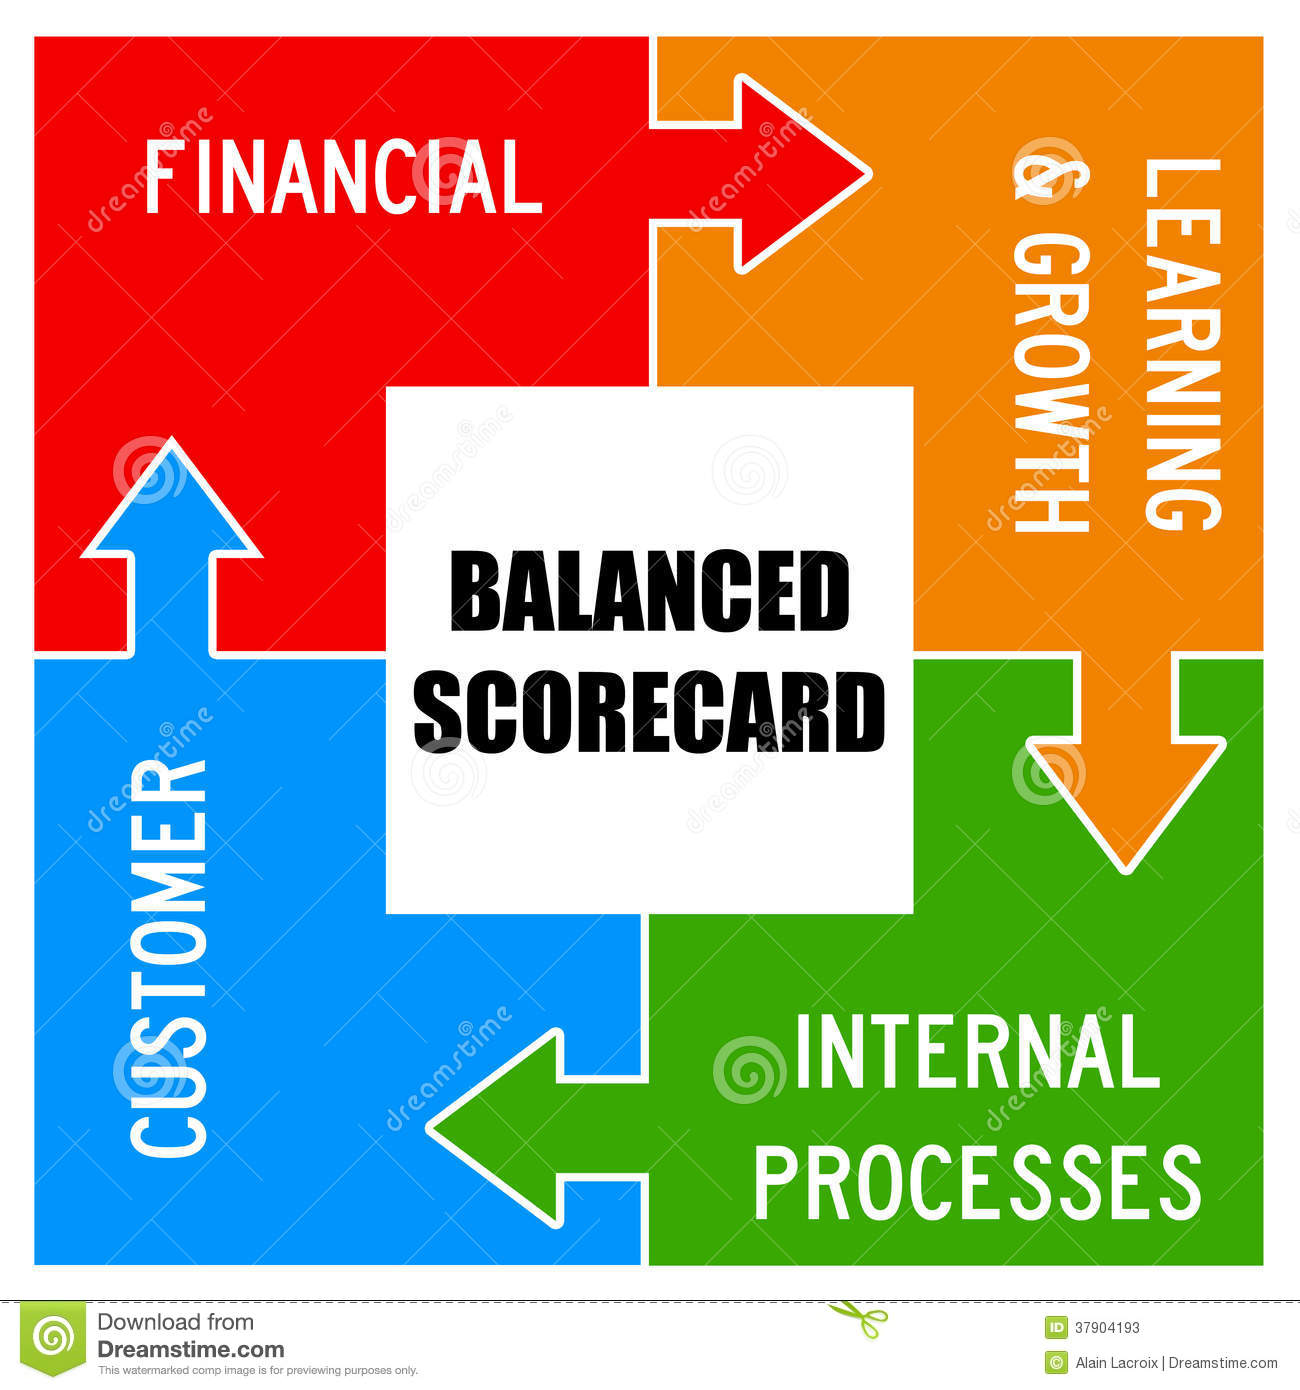 map score chart with Stock Photos Balanced Scorecard Concept As Used Organizational Processes Image37904193 on Miami Dolphins besides Lego Data Analysis additionally Flowchart 39848945 in addition 02 Patel Prevention Symposium Cv Risk Assessment1 further Air Force Feedback Form.